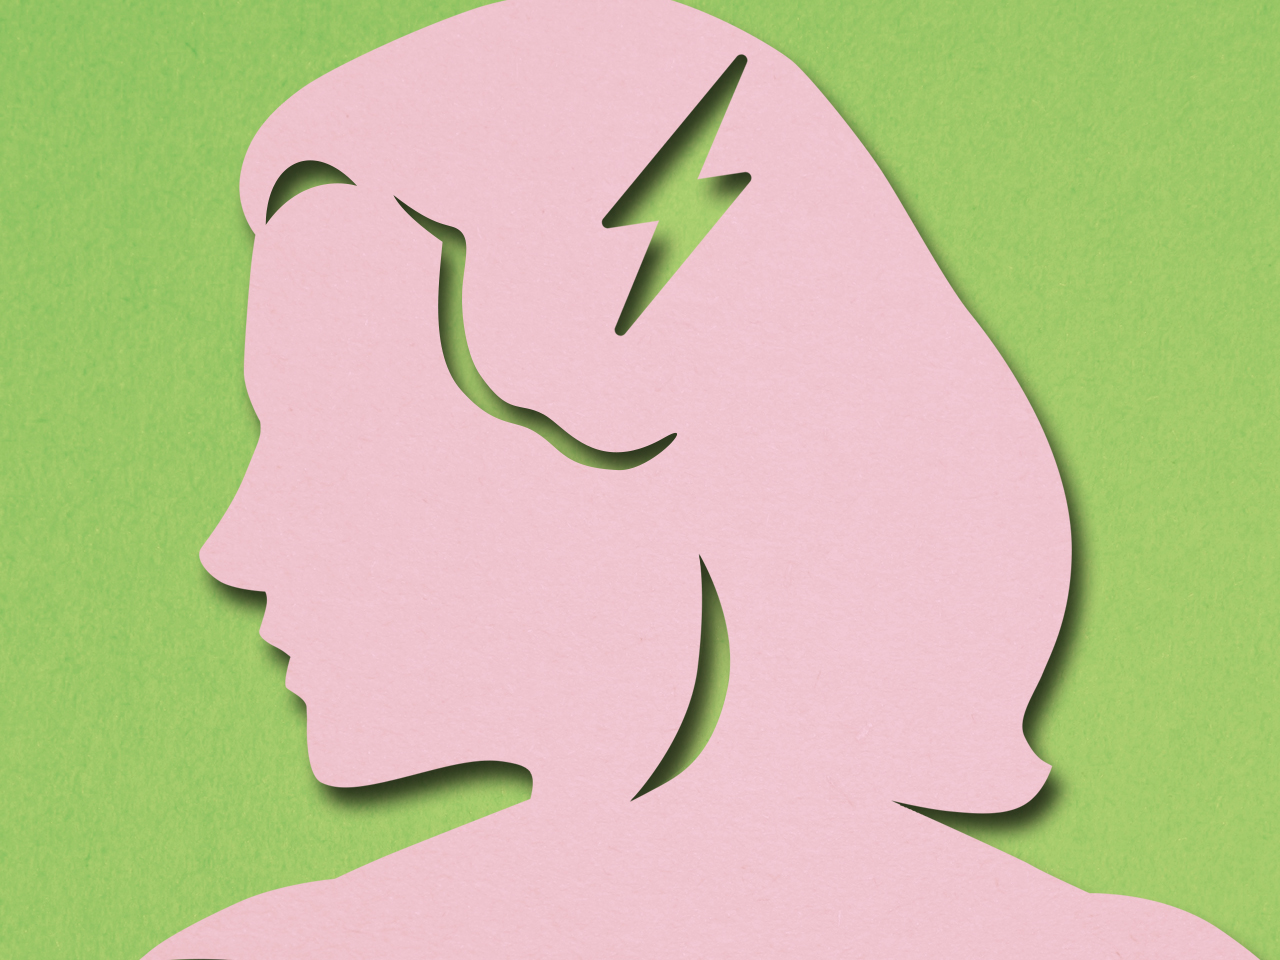 lower stroke risk - illustration of a pink woman's head in profile against green background